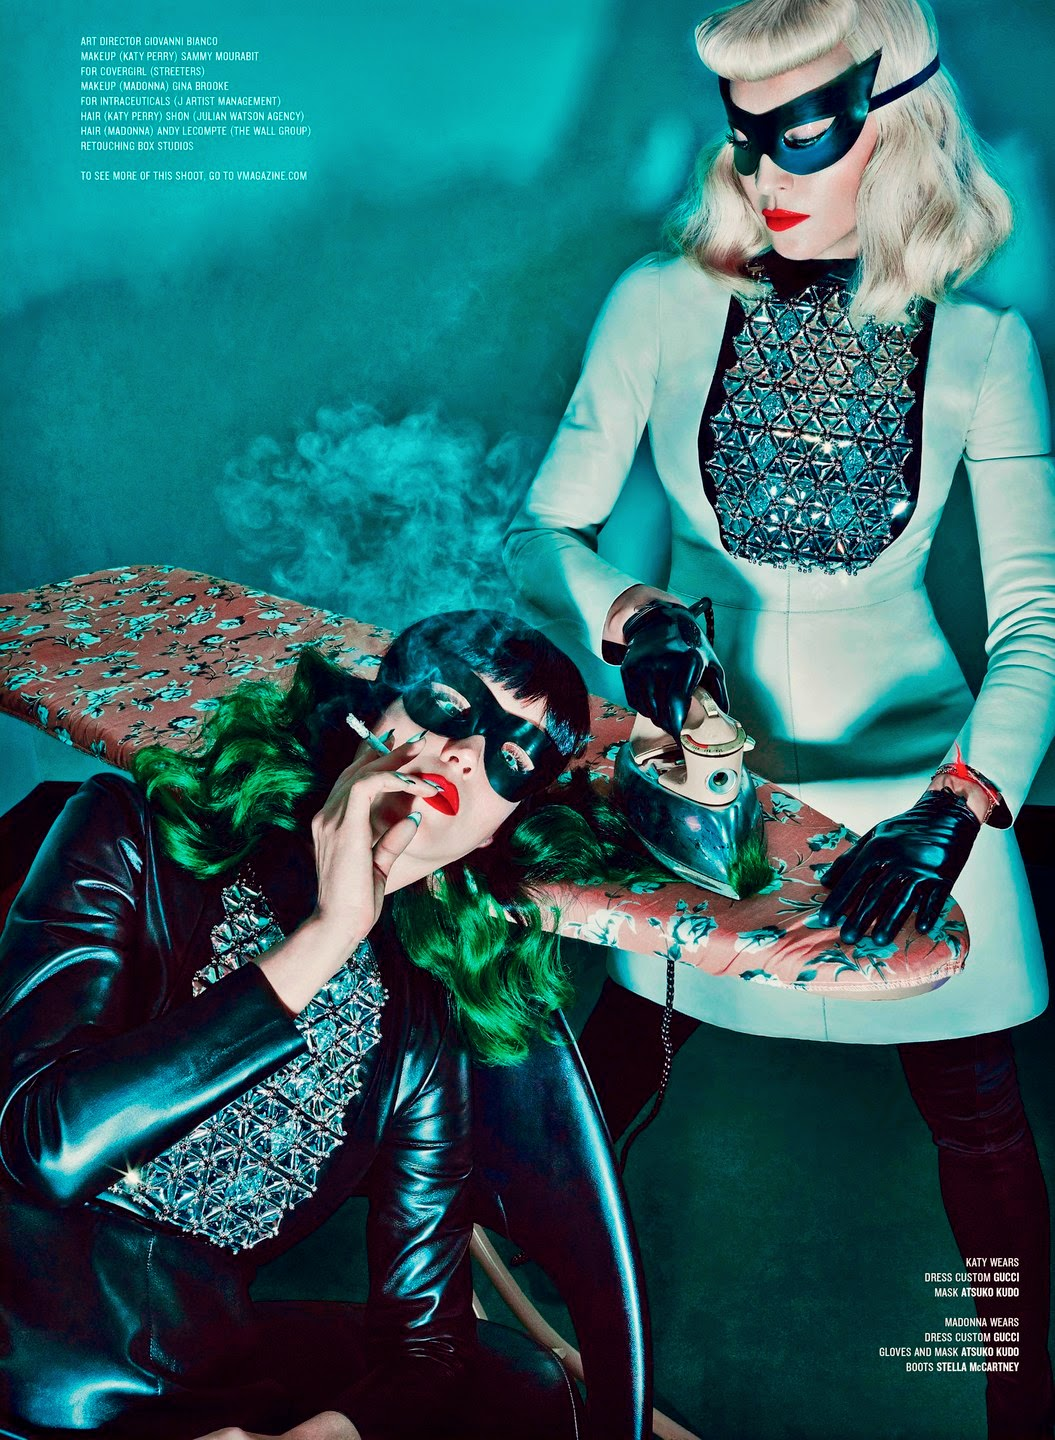 katy-perry-and-madonna-by-steven-klein-for-v-magazine-89-summer-2014-11